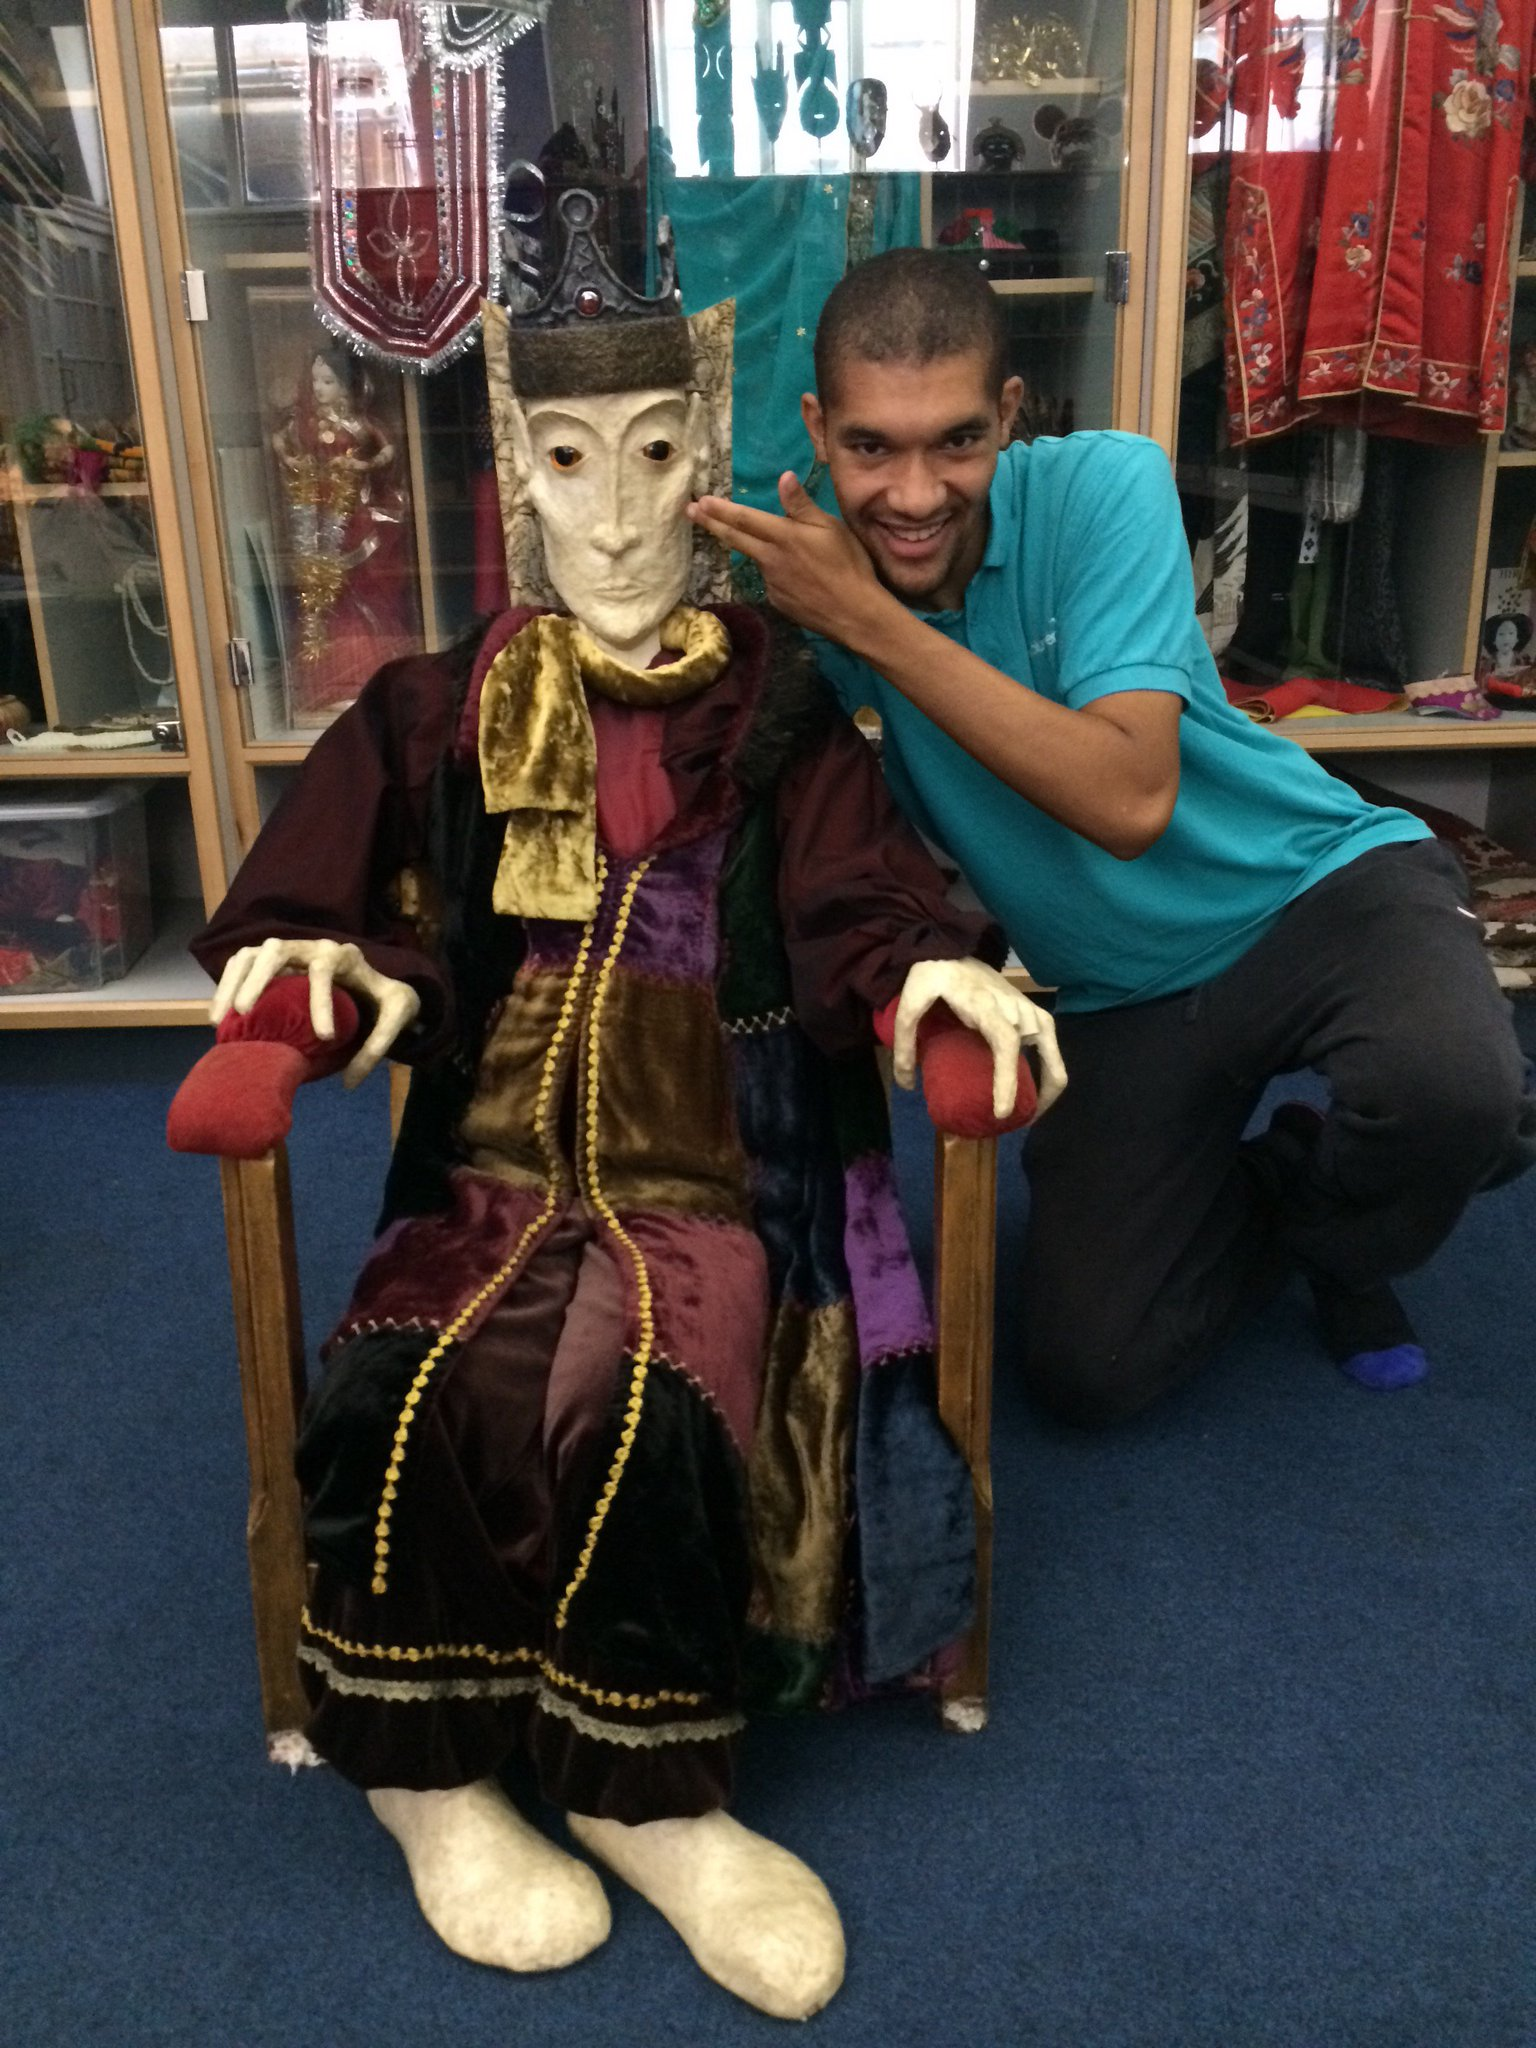 The night king has been spotted at the museum! It's a wooden throne though so we're not too worried about it #TakeOverDay https://t.co/shKUmhI3ZG